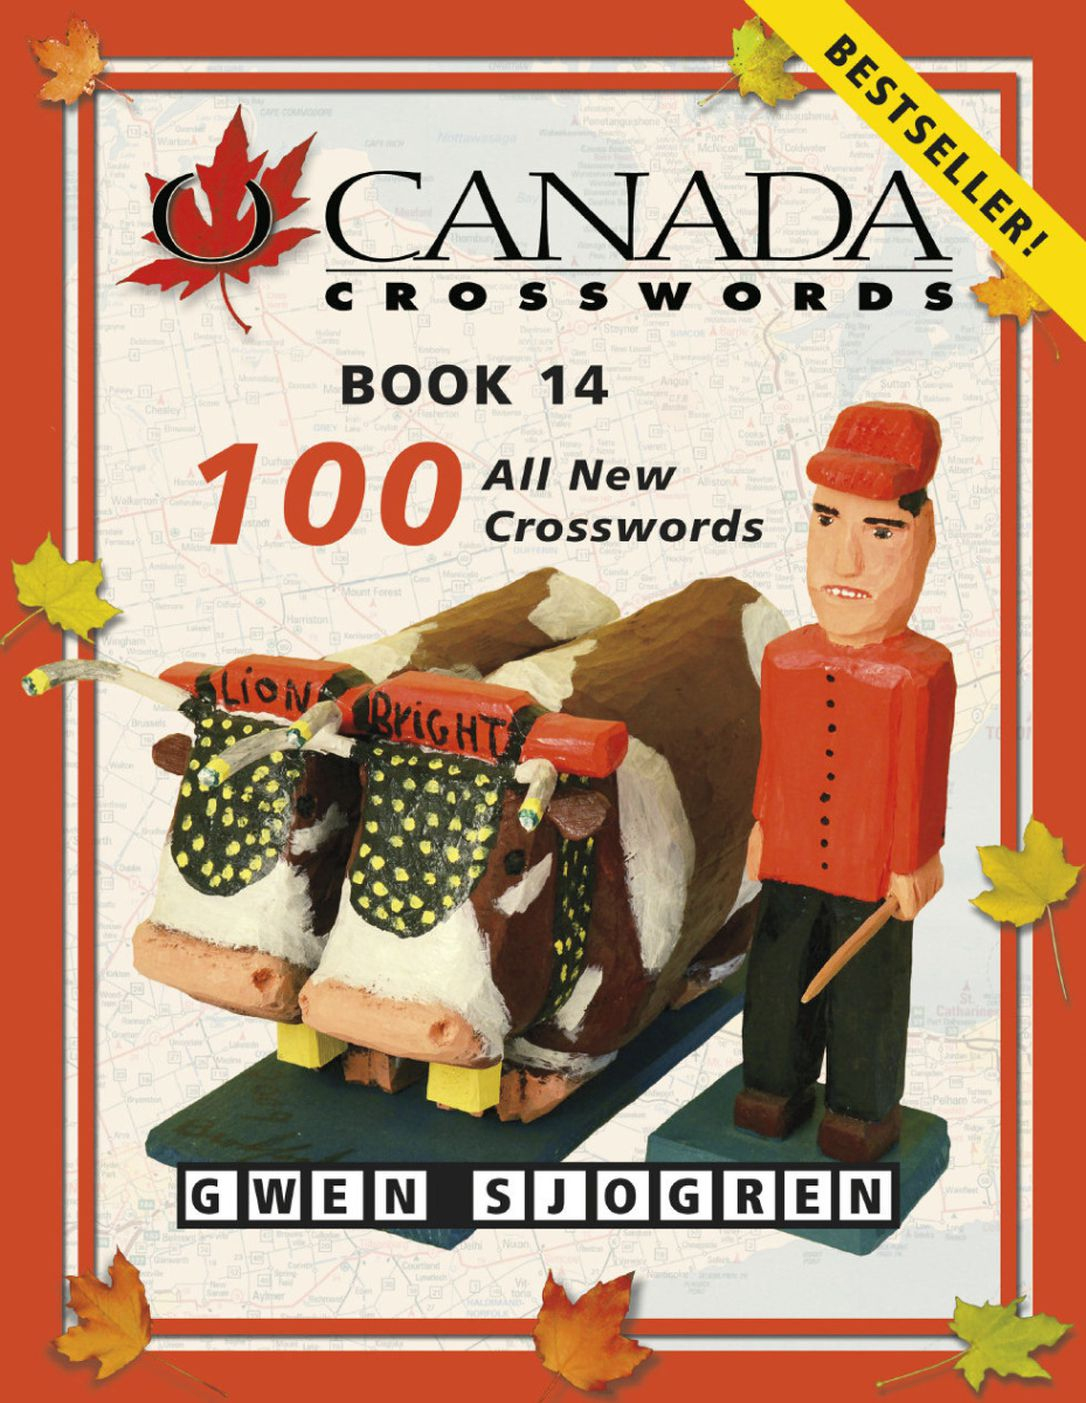 Canadiana Crosswords Compete With U.s. Puzzles | The Star - Printable Crossword Toronto Star